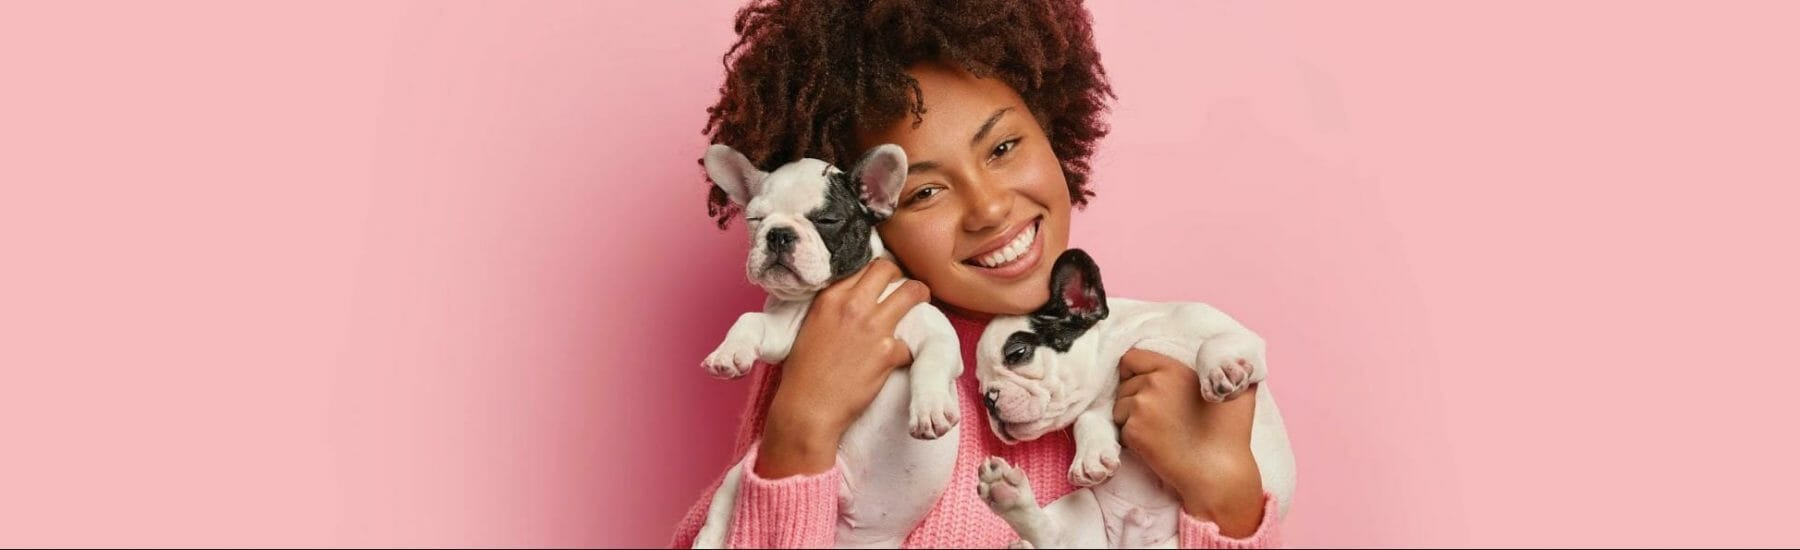 Woman holding two puppies against a pink background